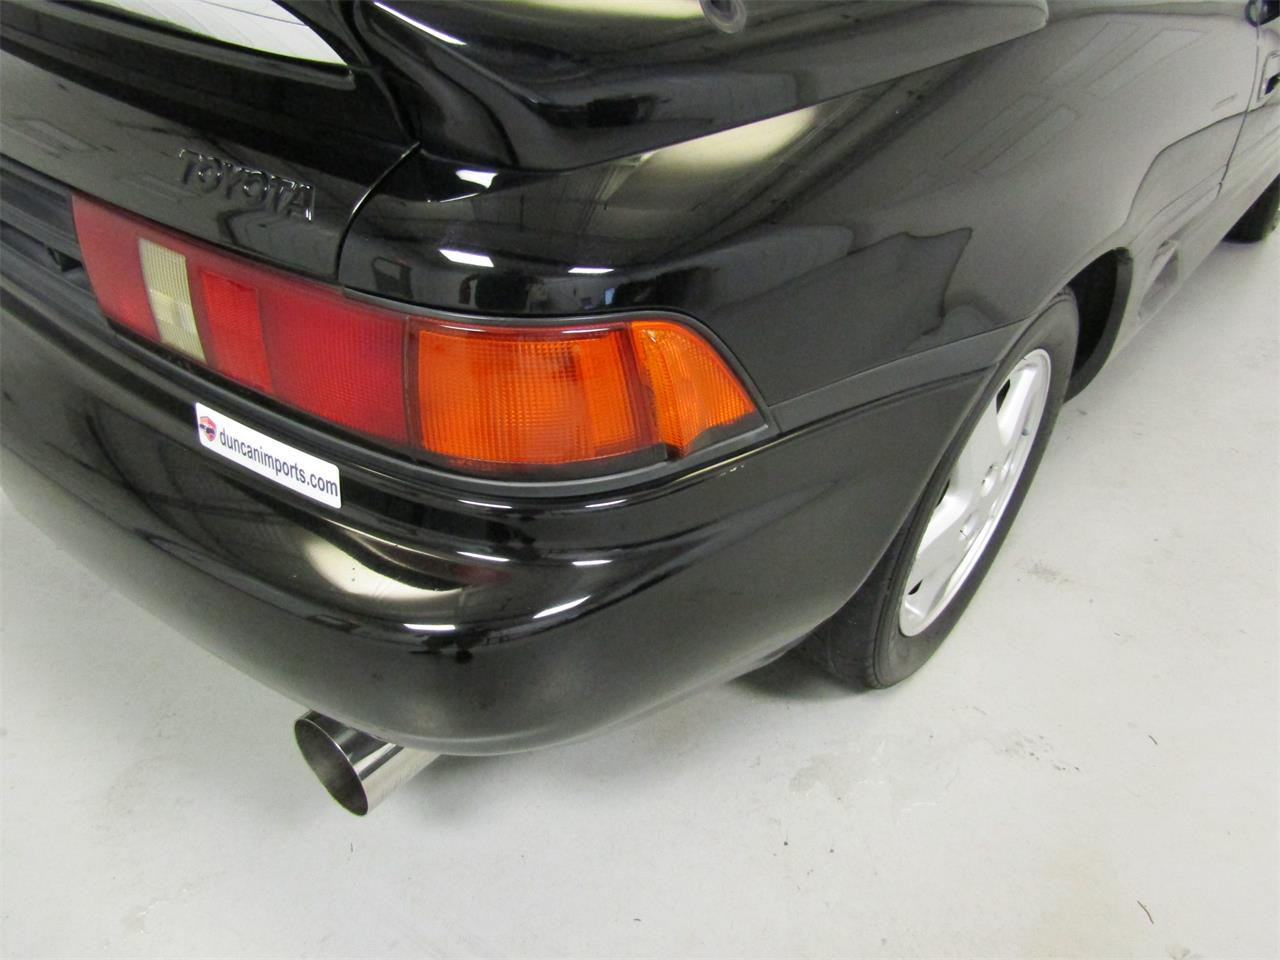 Large Picture of '92 Toyota MR2 located in Virginia - $16,991.00 Offered by Duncan Imports & Classic Cars - OLED